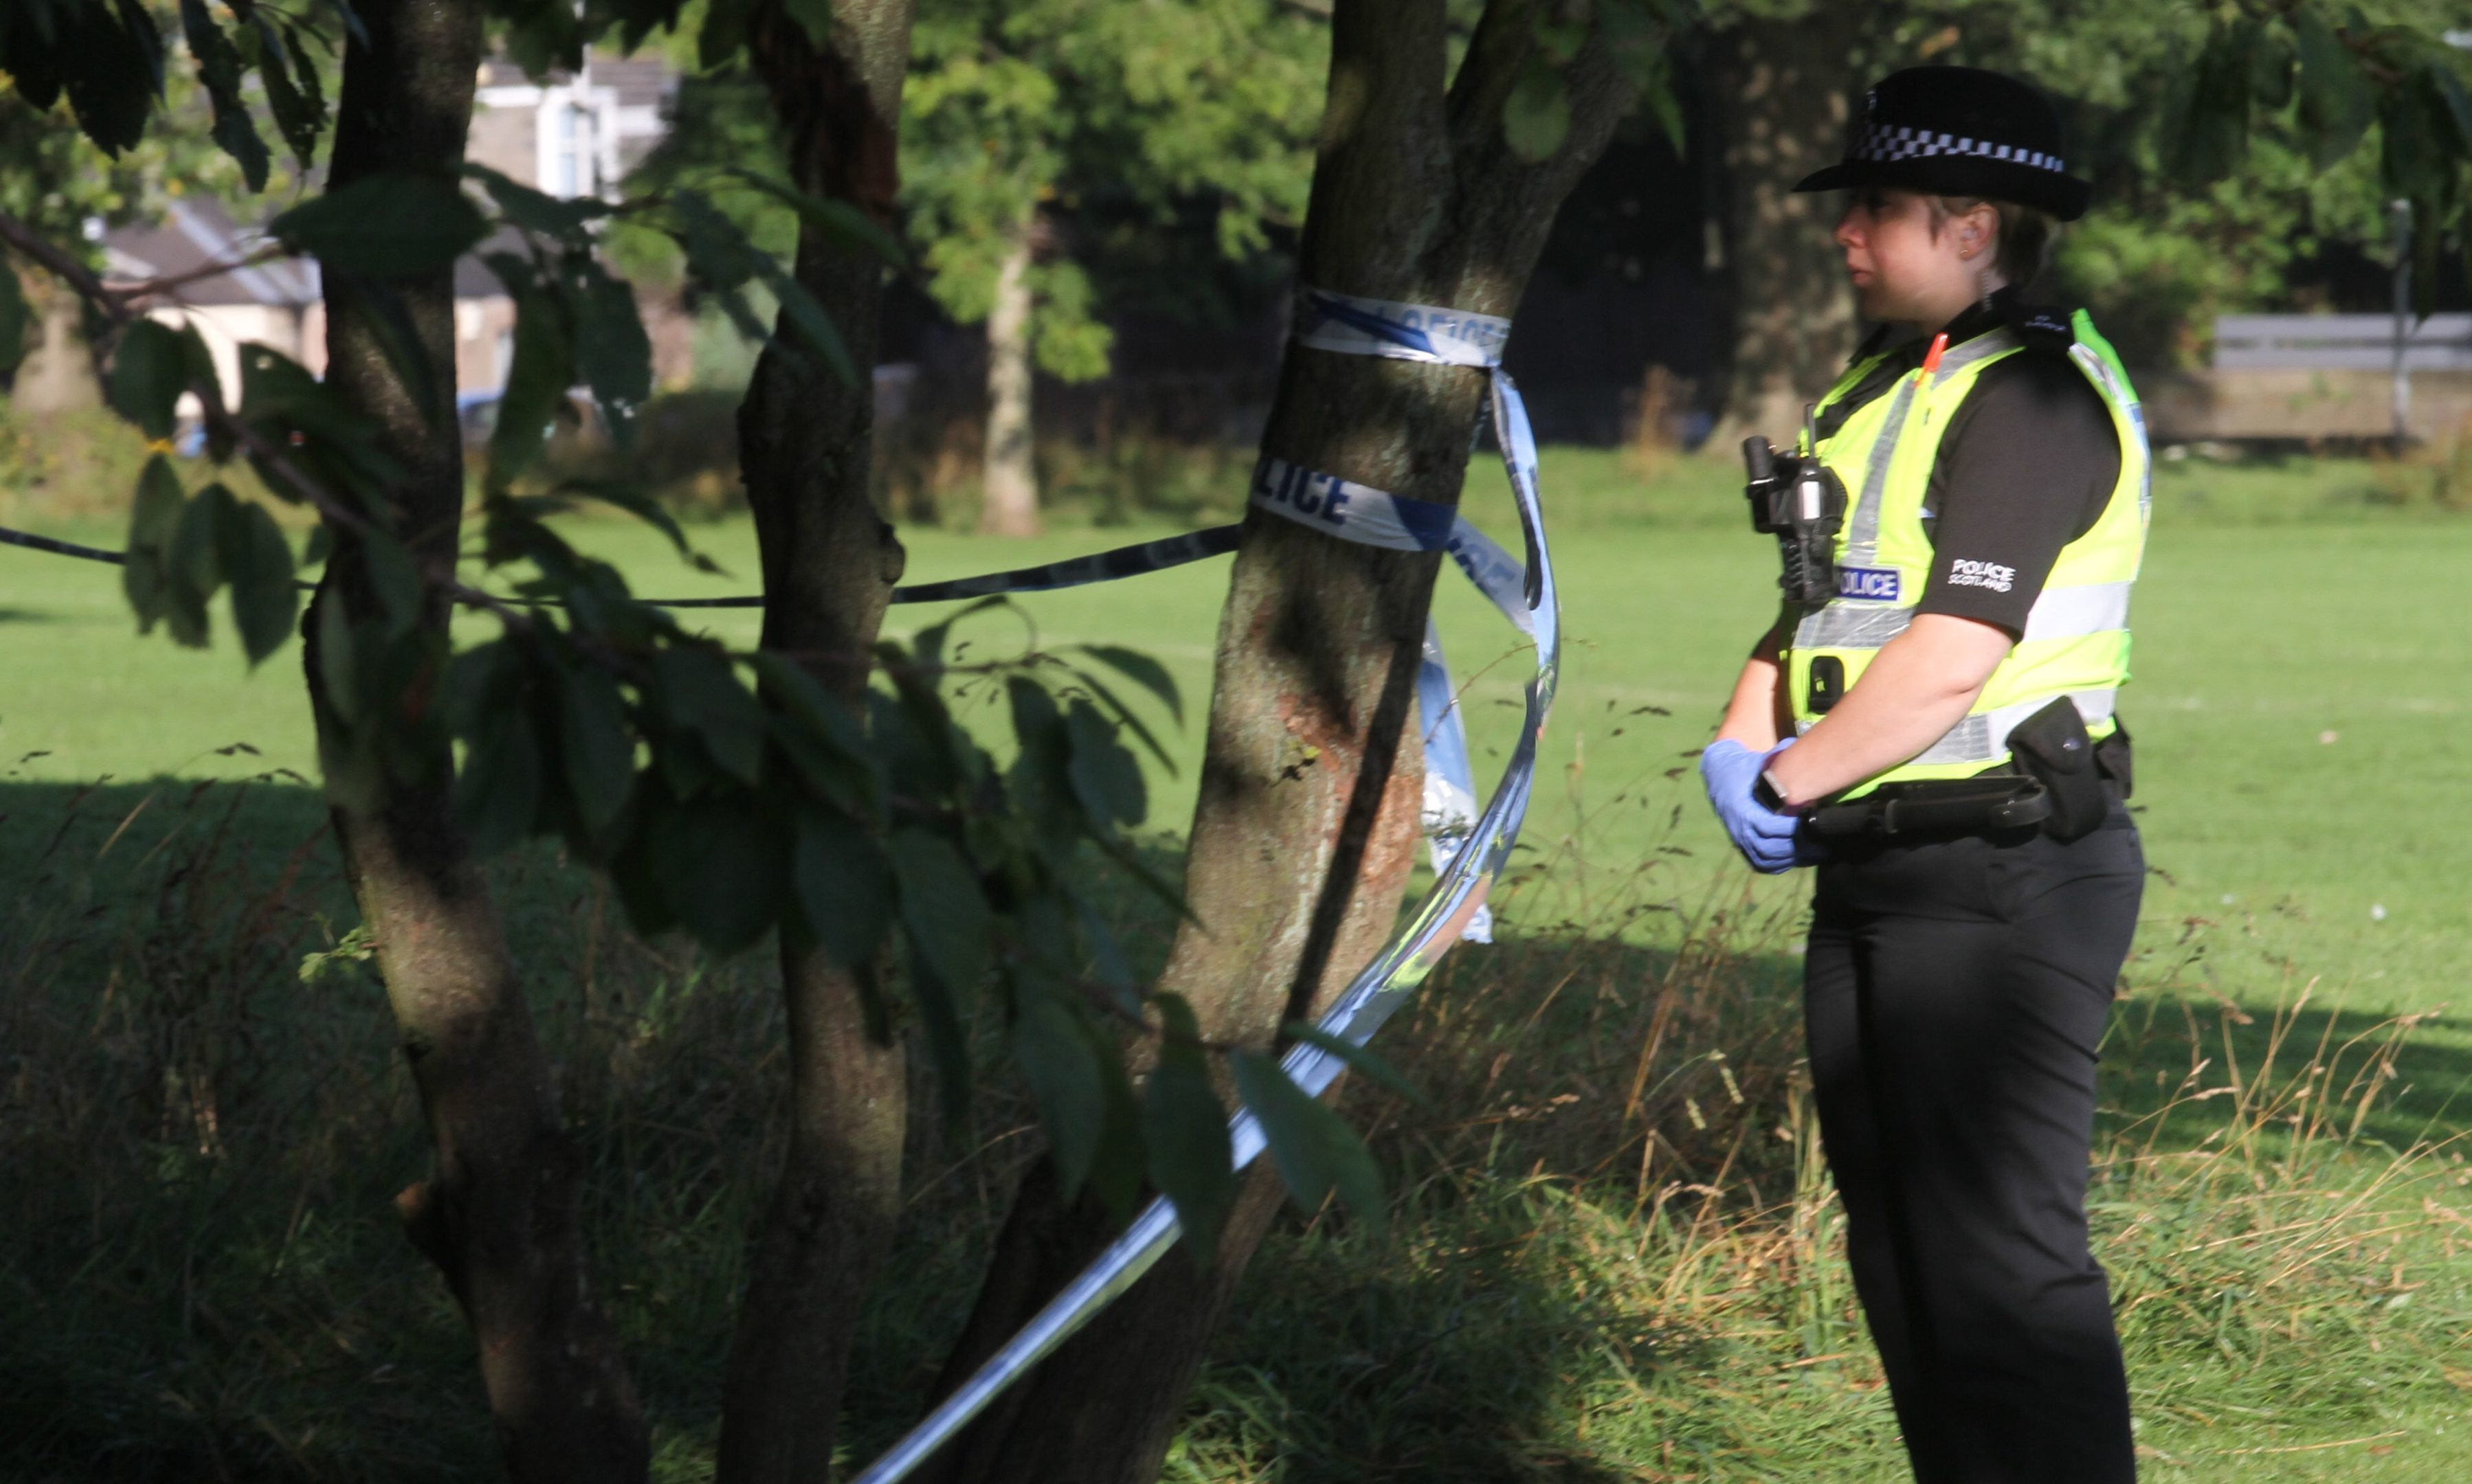 Police officer at the scene.